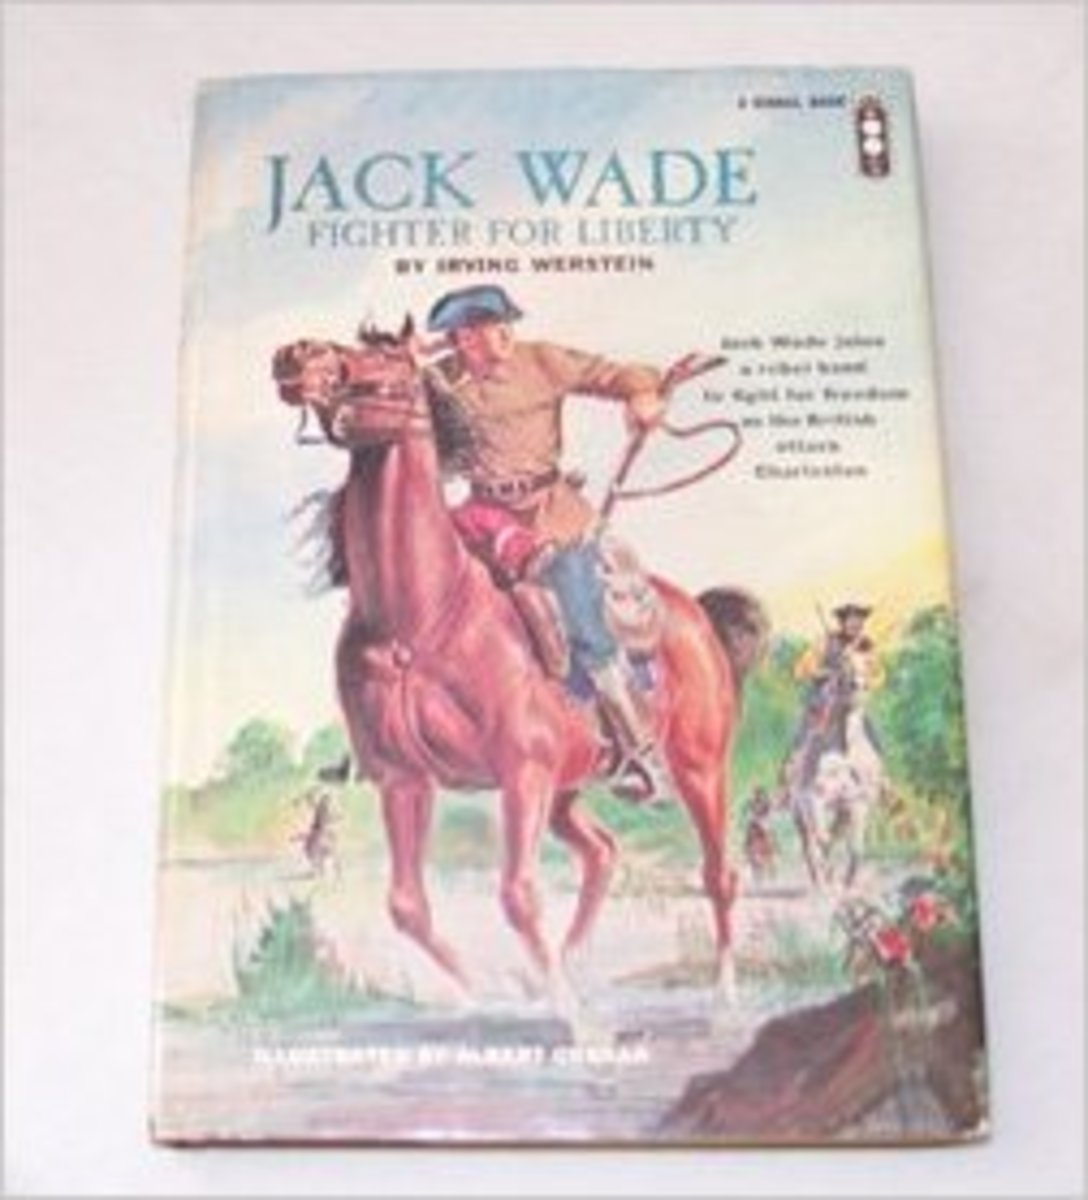 Jack Wade: Fighter for liberty (A Signal book) by Irving Werstein